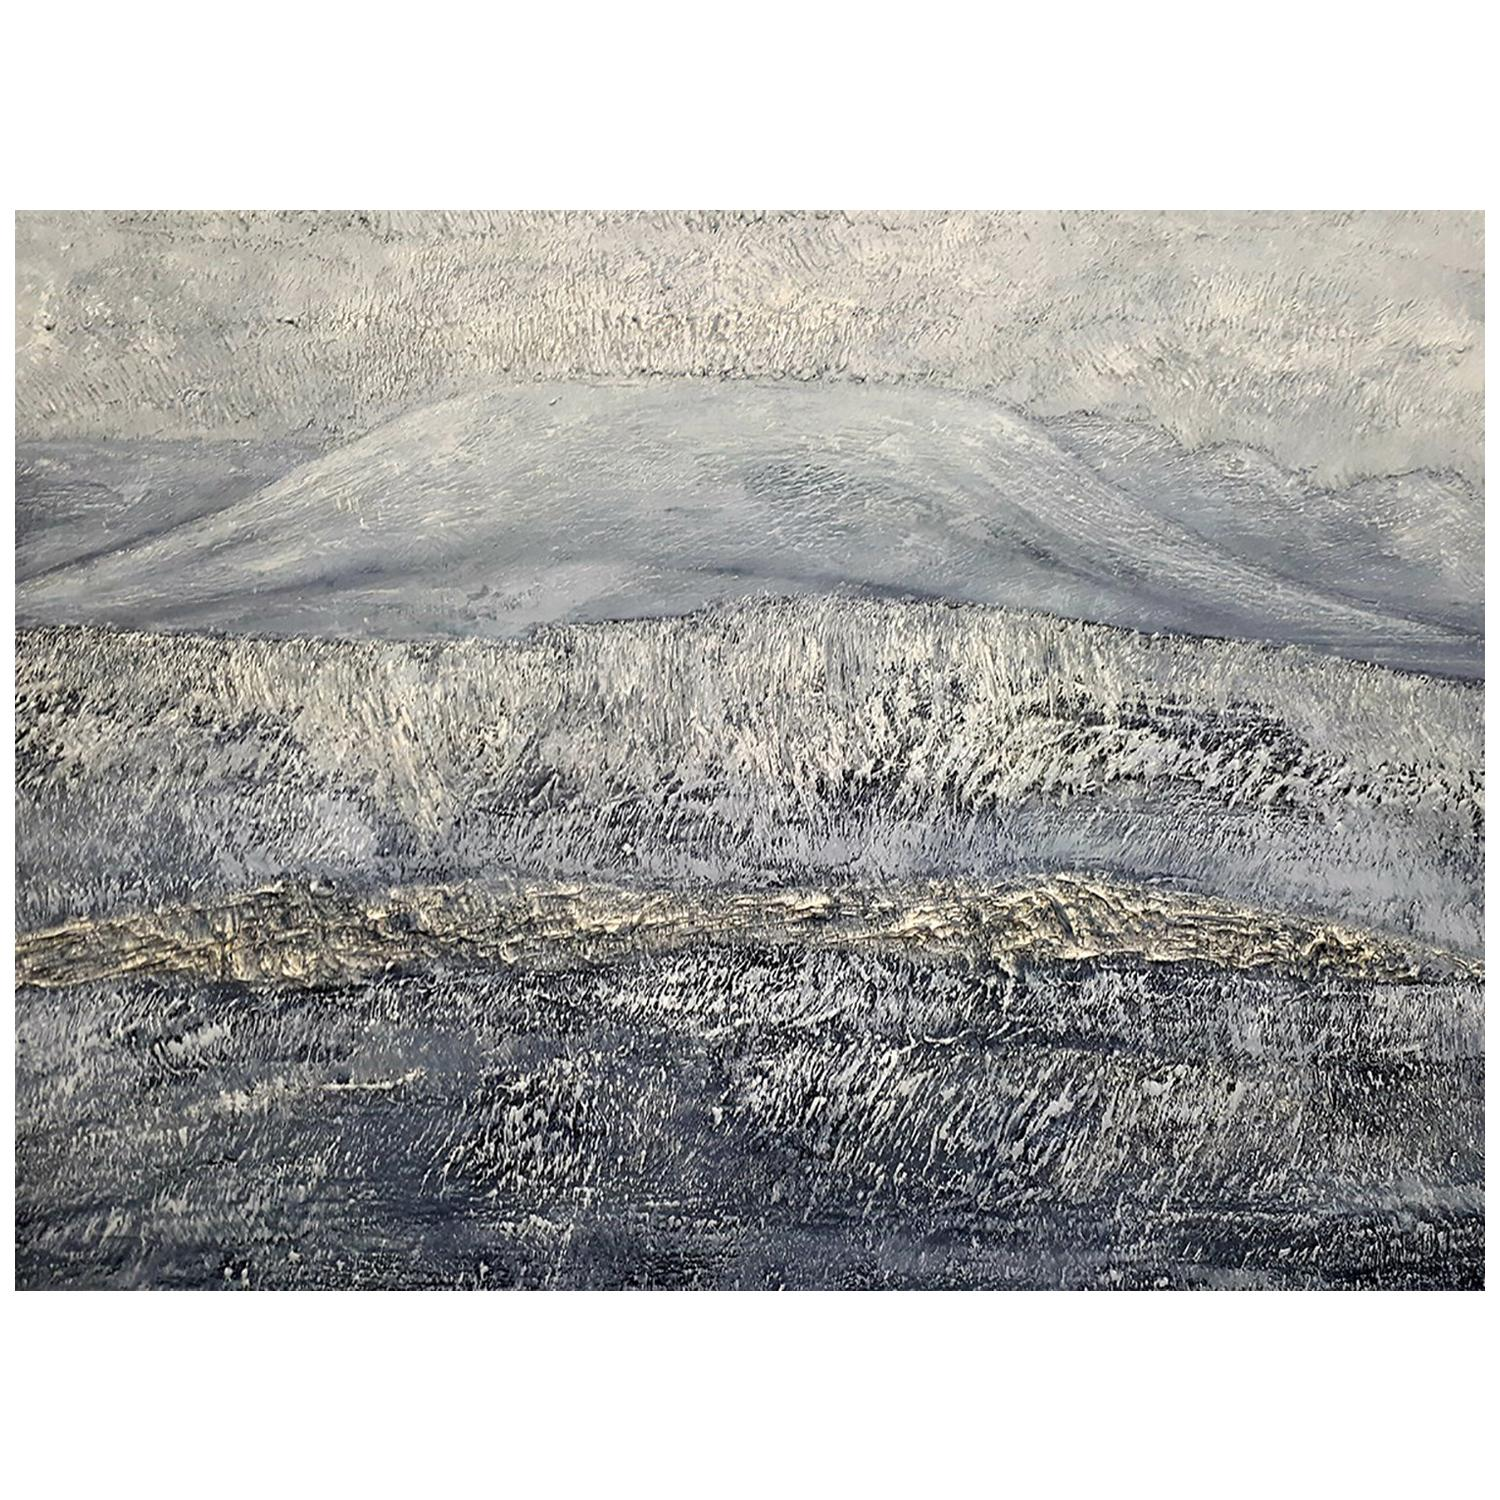 Echos from Usher Hill, Contemporary Oil Landscape